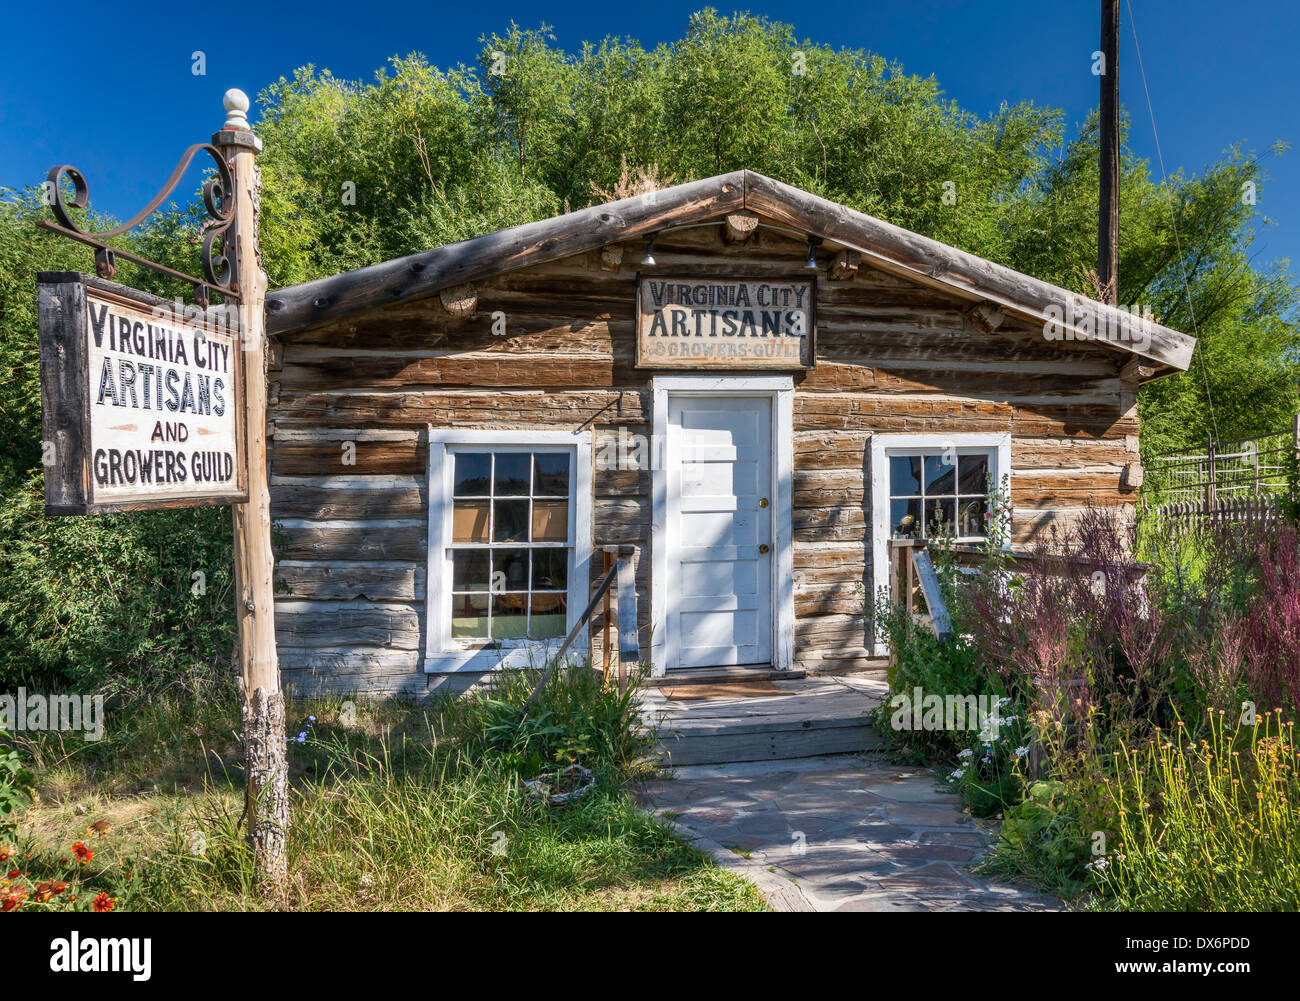 Artisans shop at log cabin in ghost town of Virginia City, Montana, USA - Stock Image